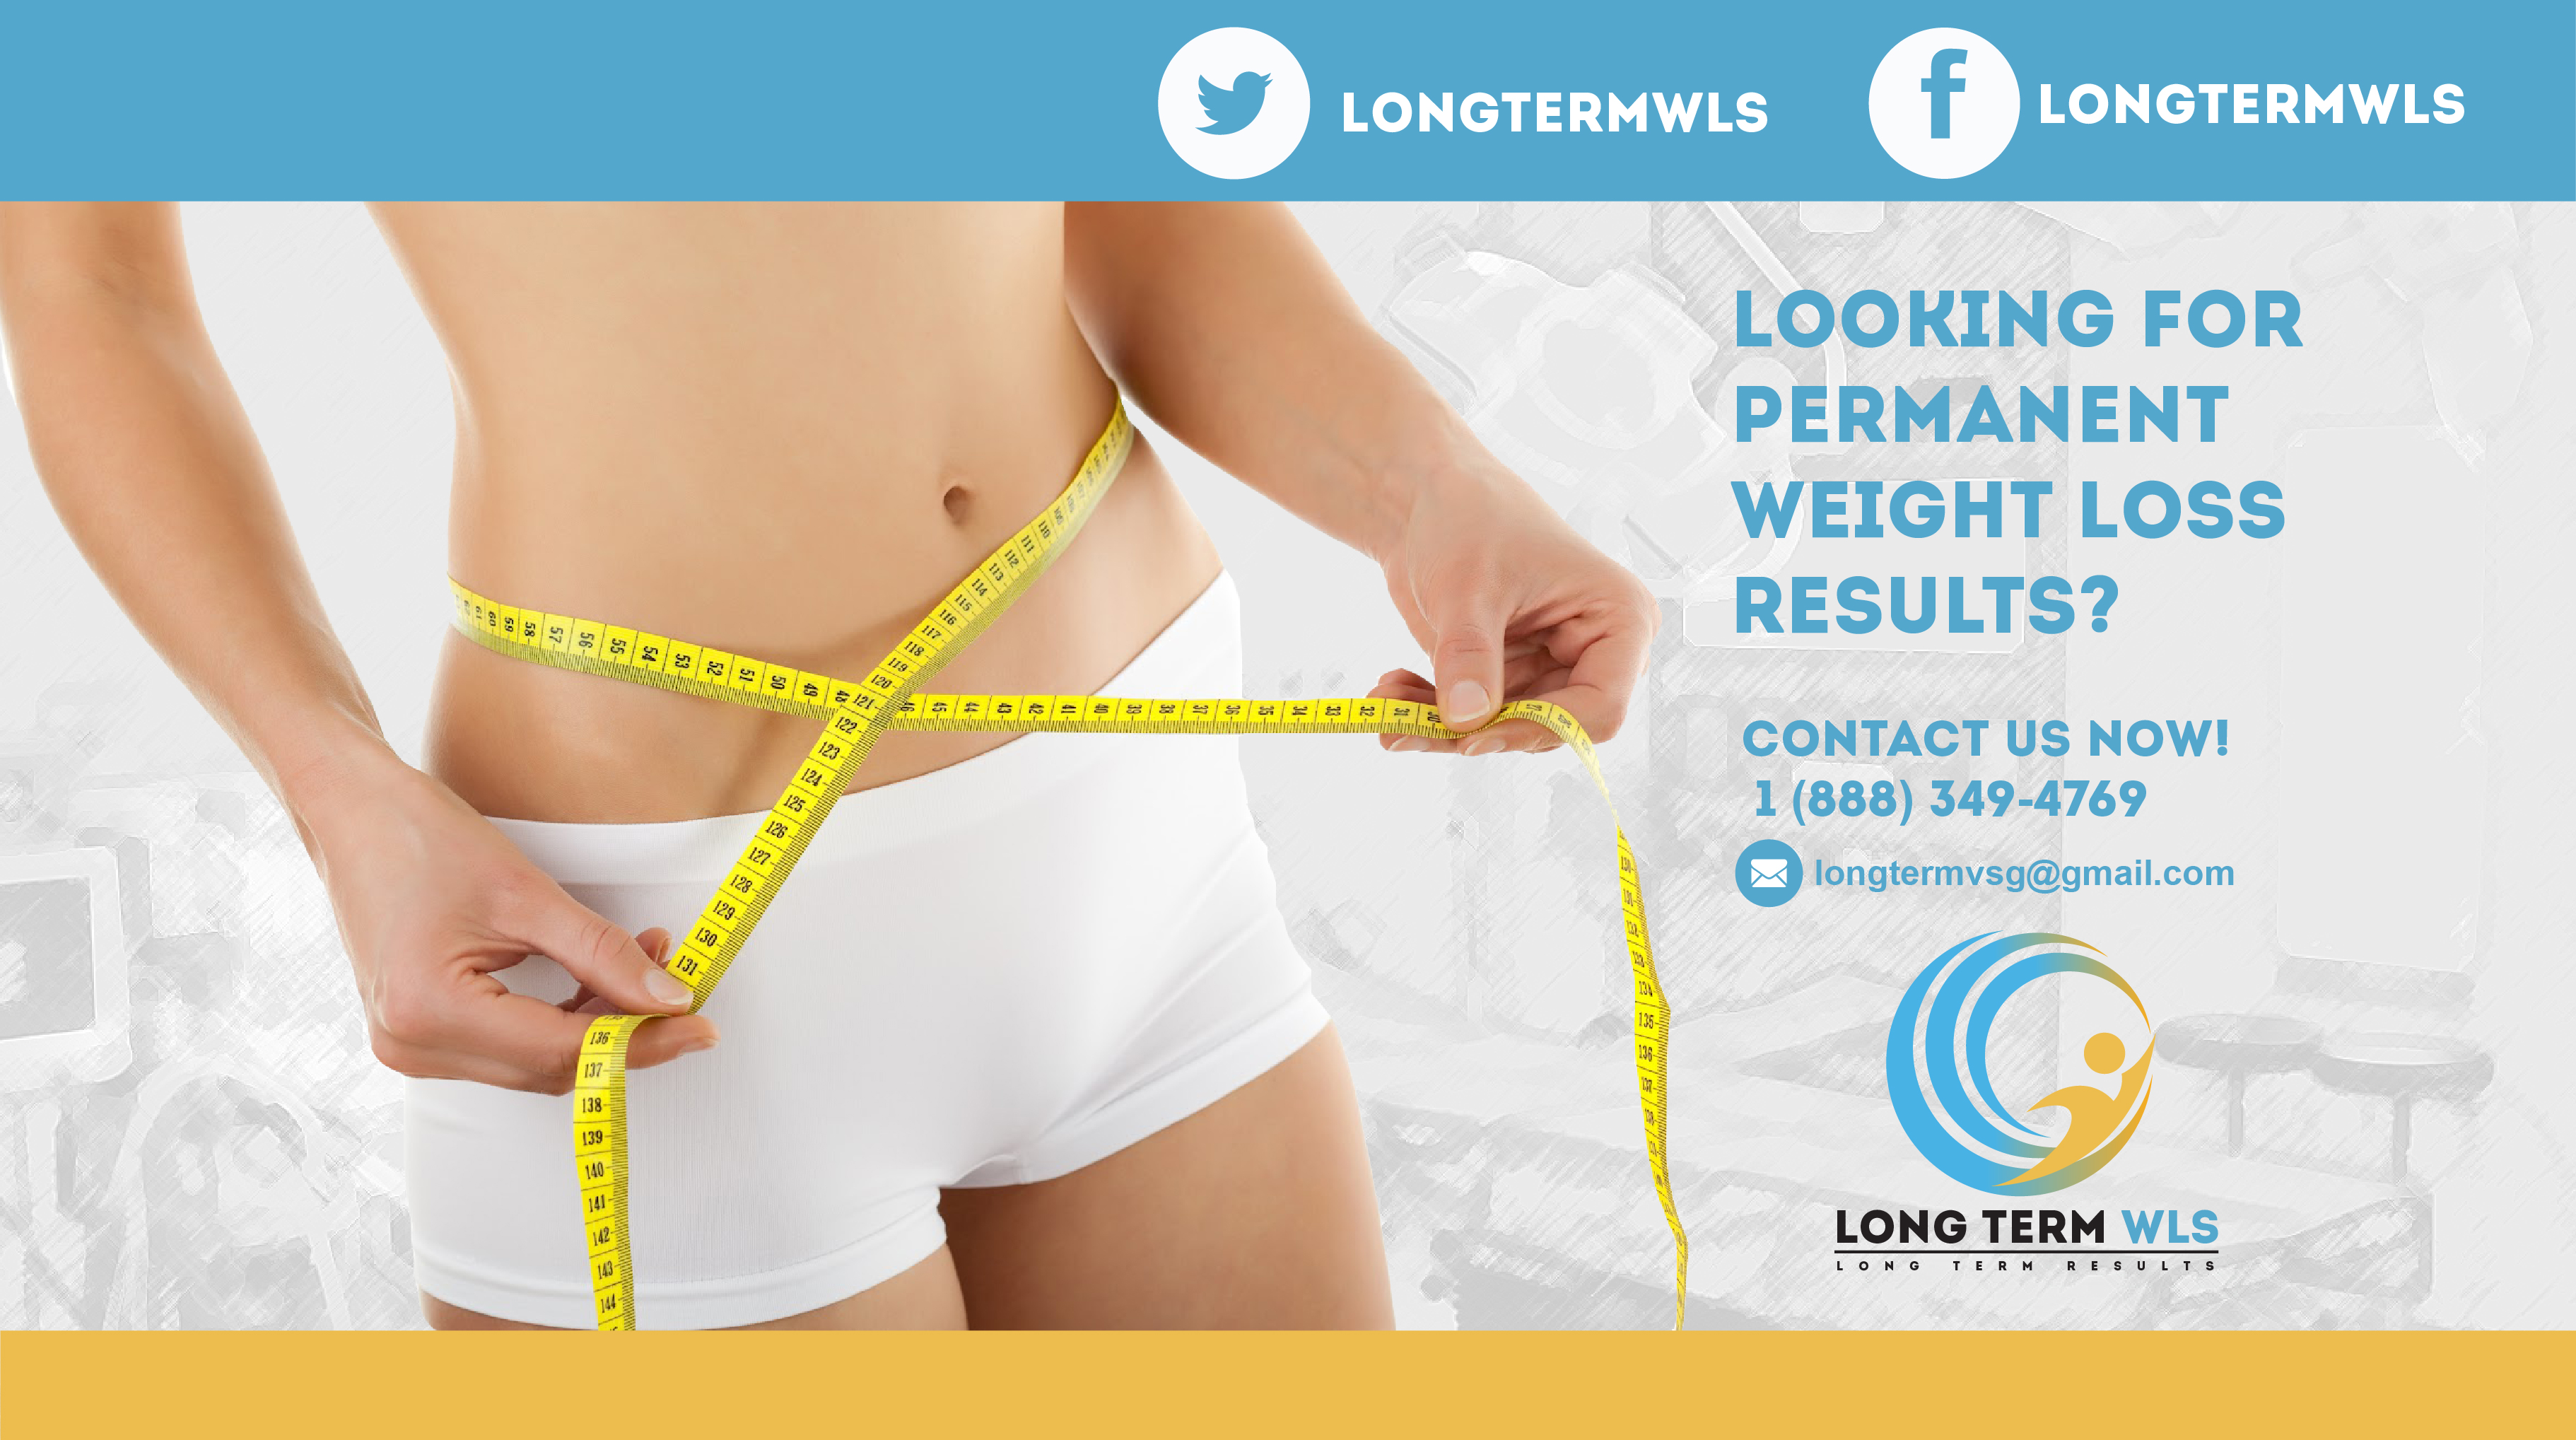 Bmi calculator weight loss plan image 10